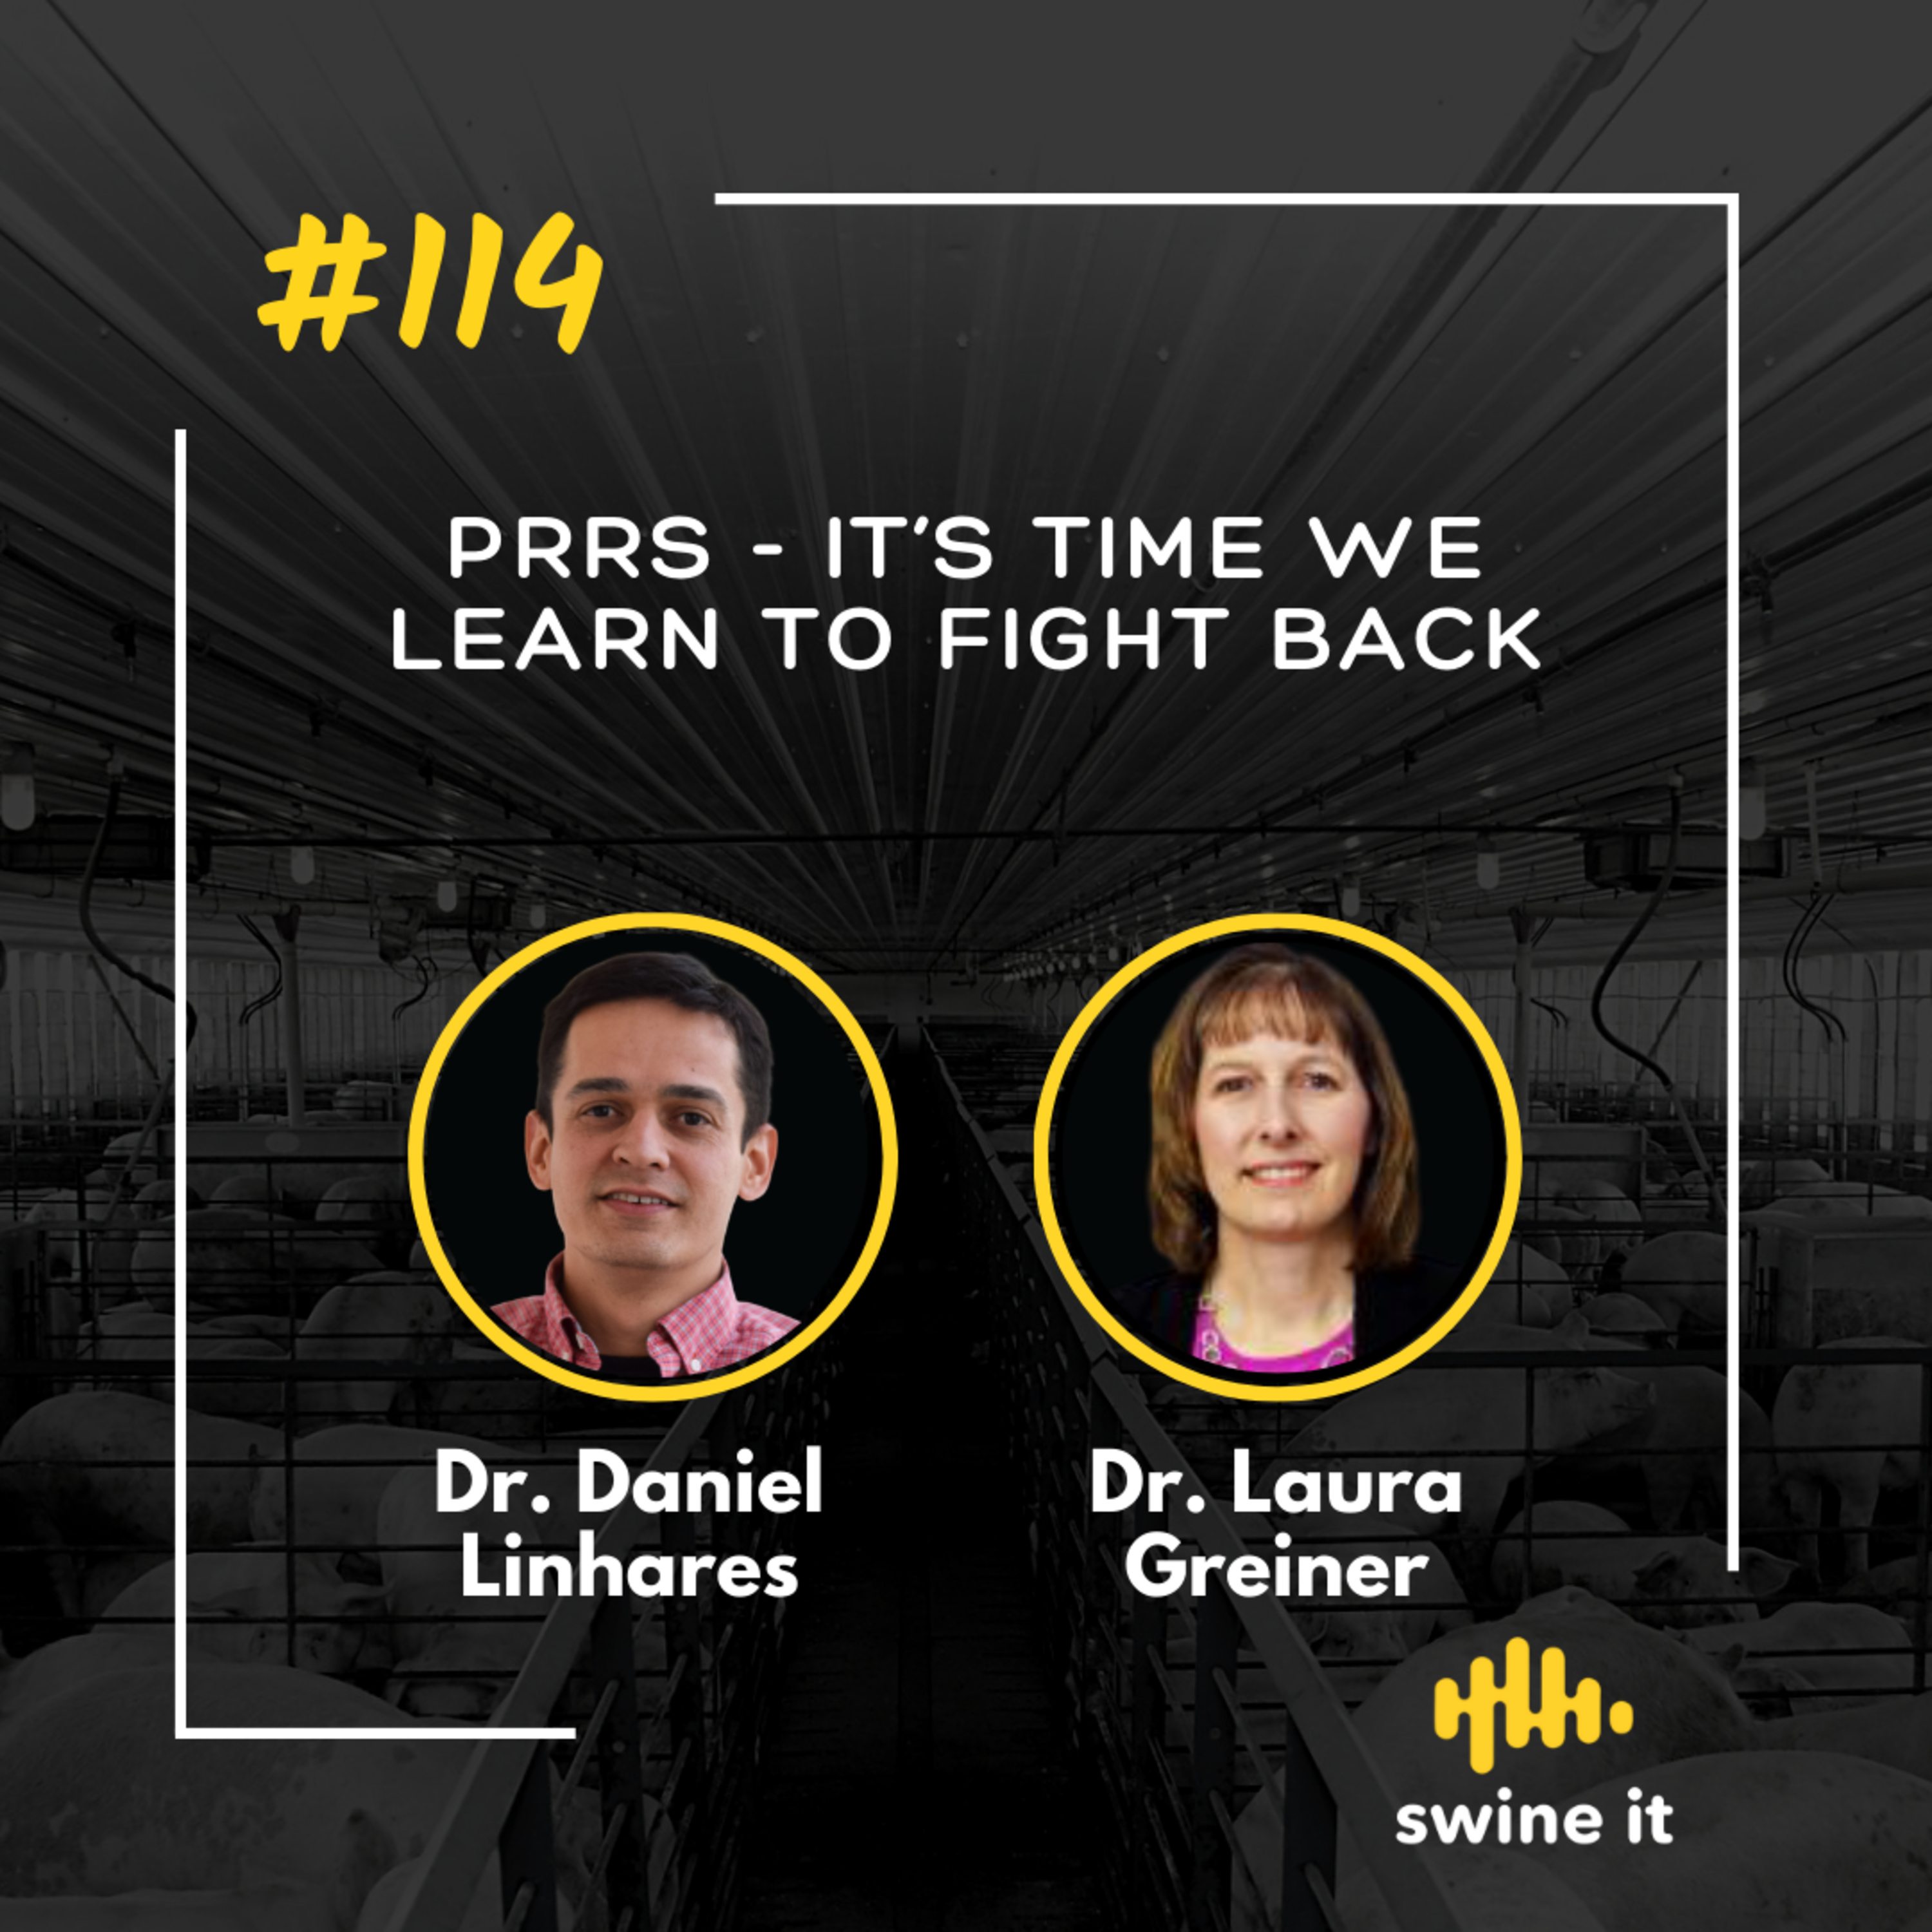 PRRS - it's time we learn to fight back - Dr. Daniel Linhares